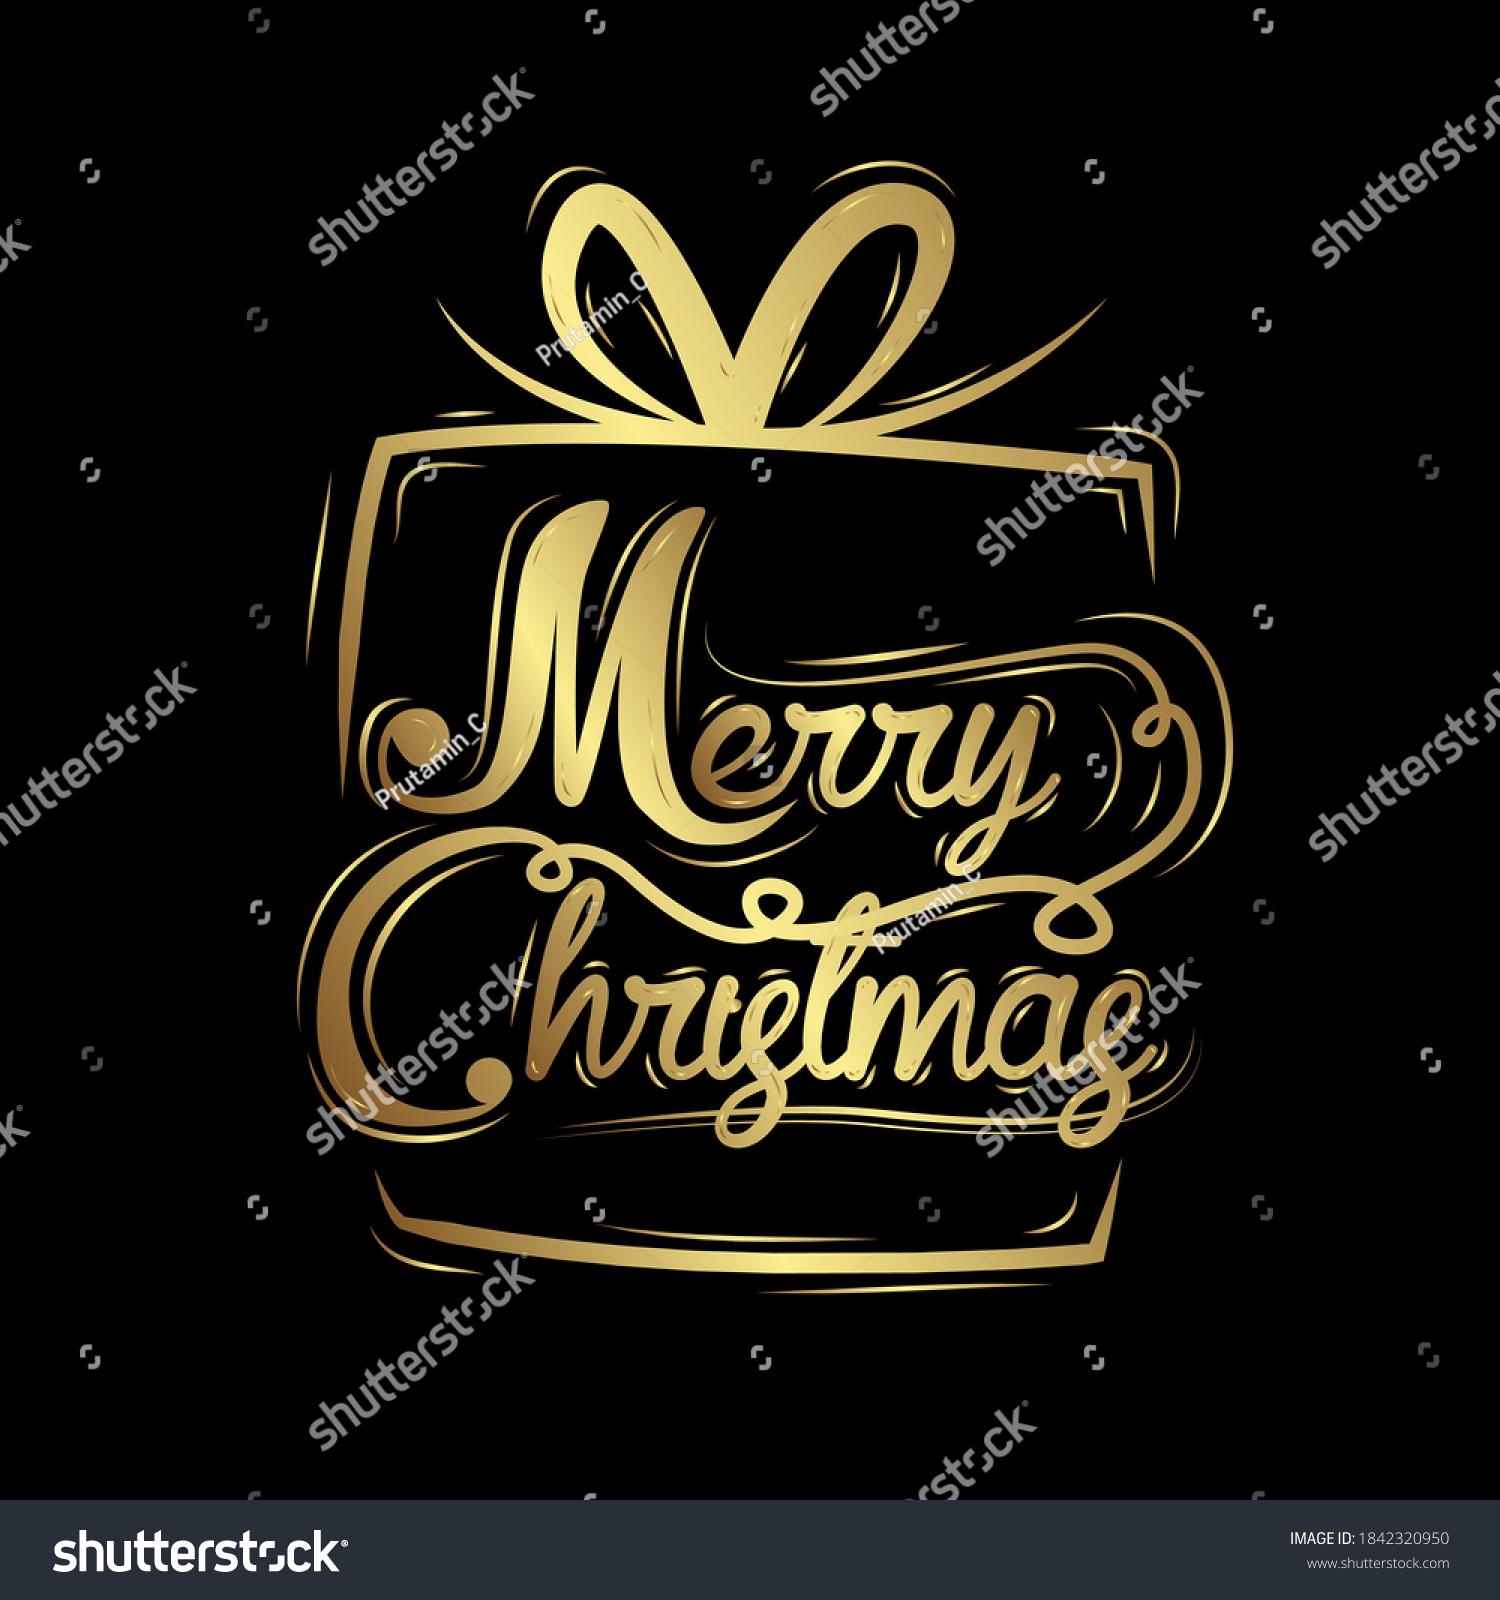 stock-vector-merry-christmas-vintage-bac